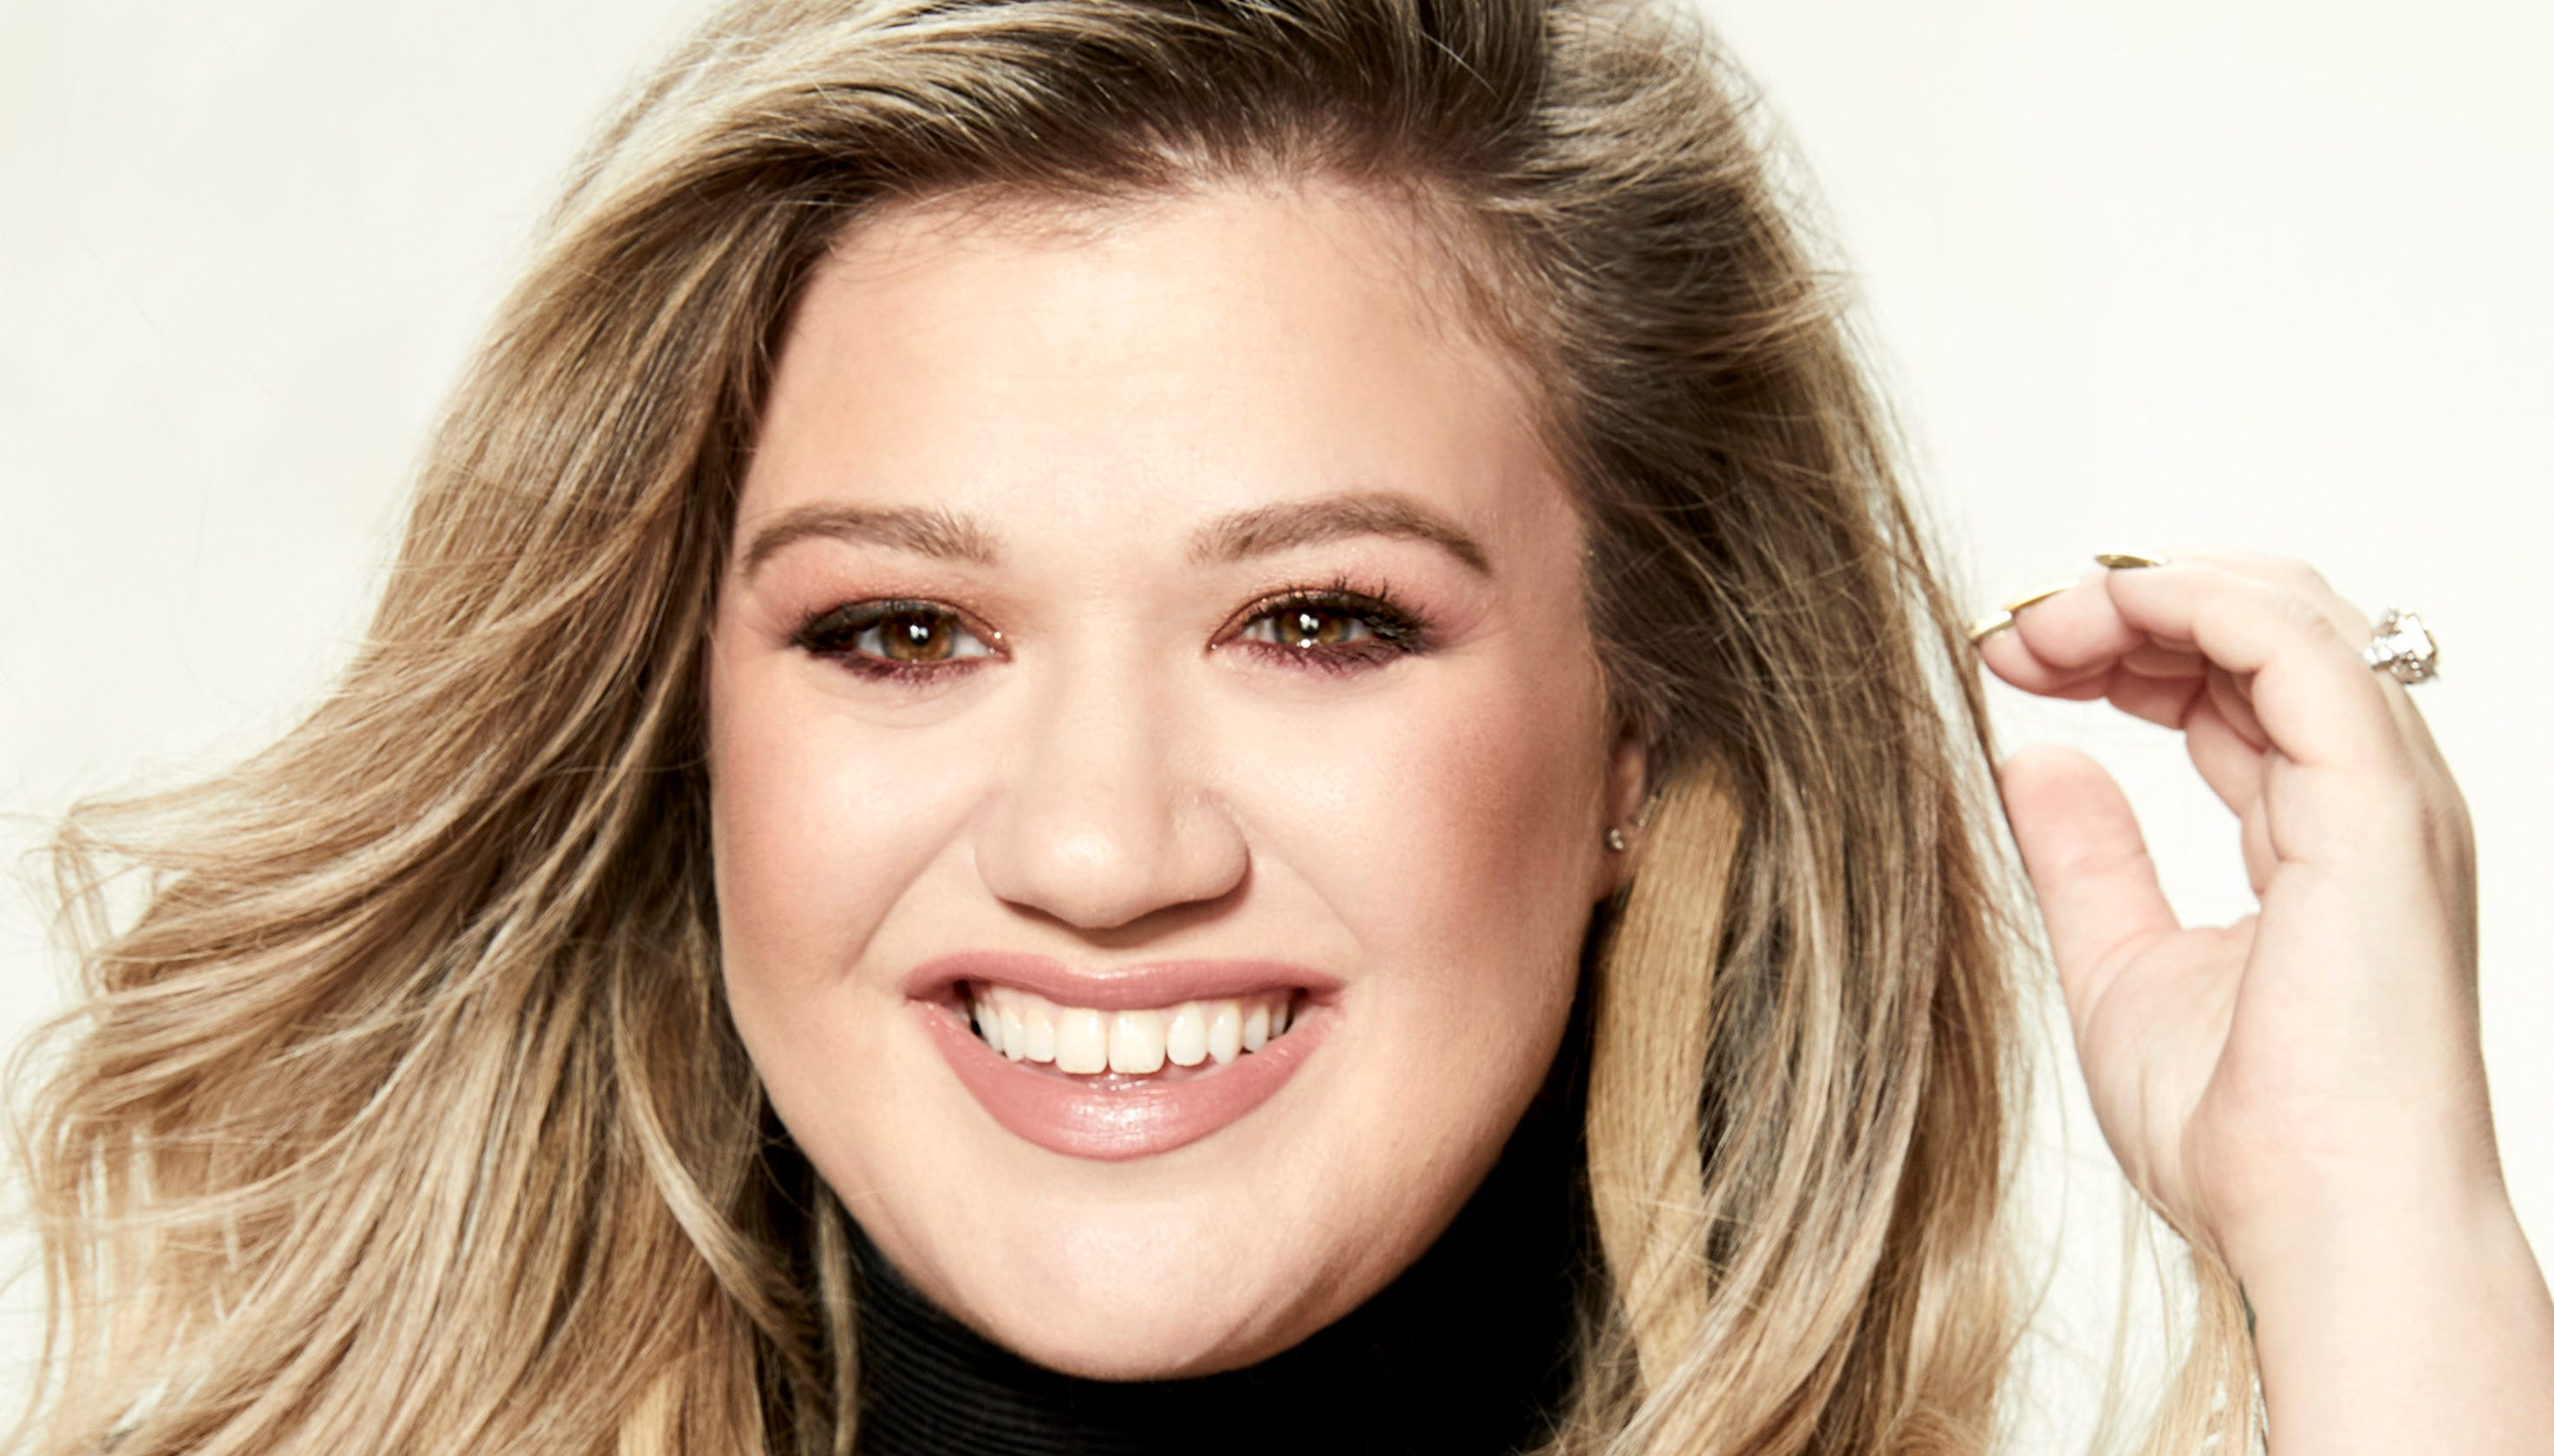 Singer Kelly Clarkson will get to display chat skills on new weekday talk show